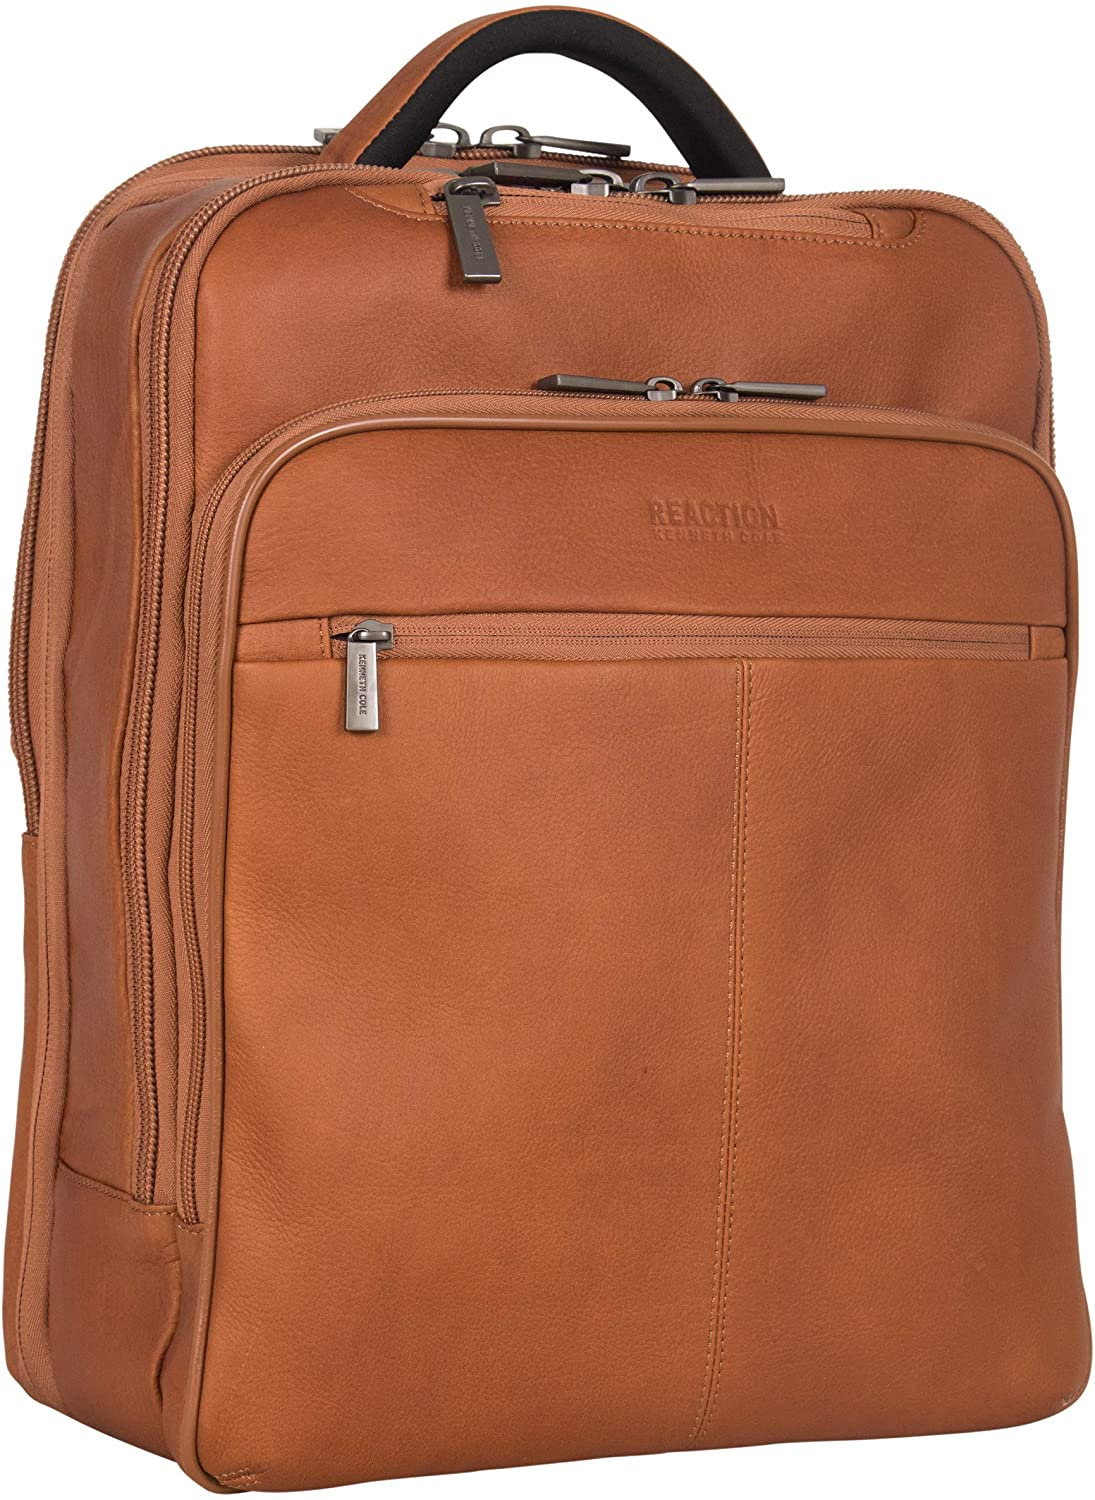 best work bags for men - light brown leather business backpack